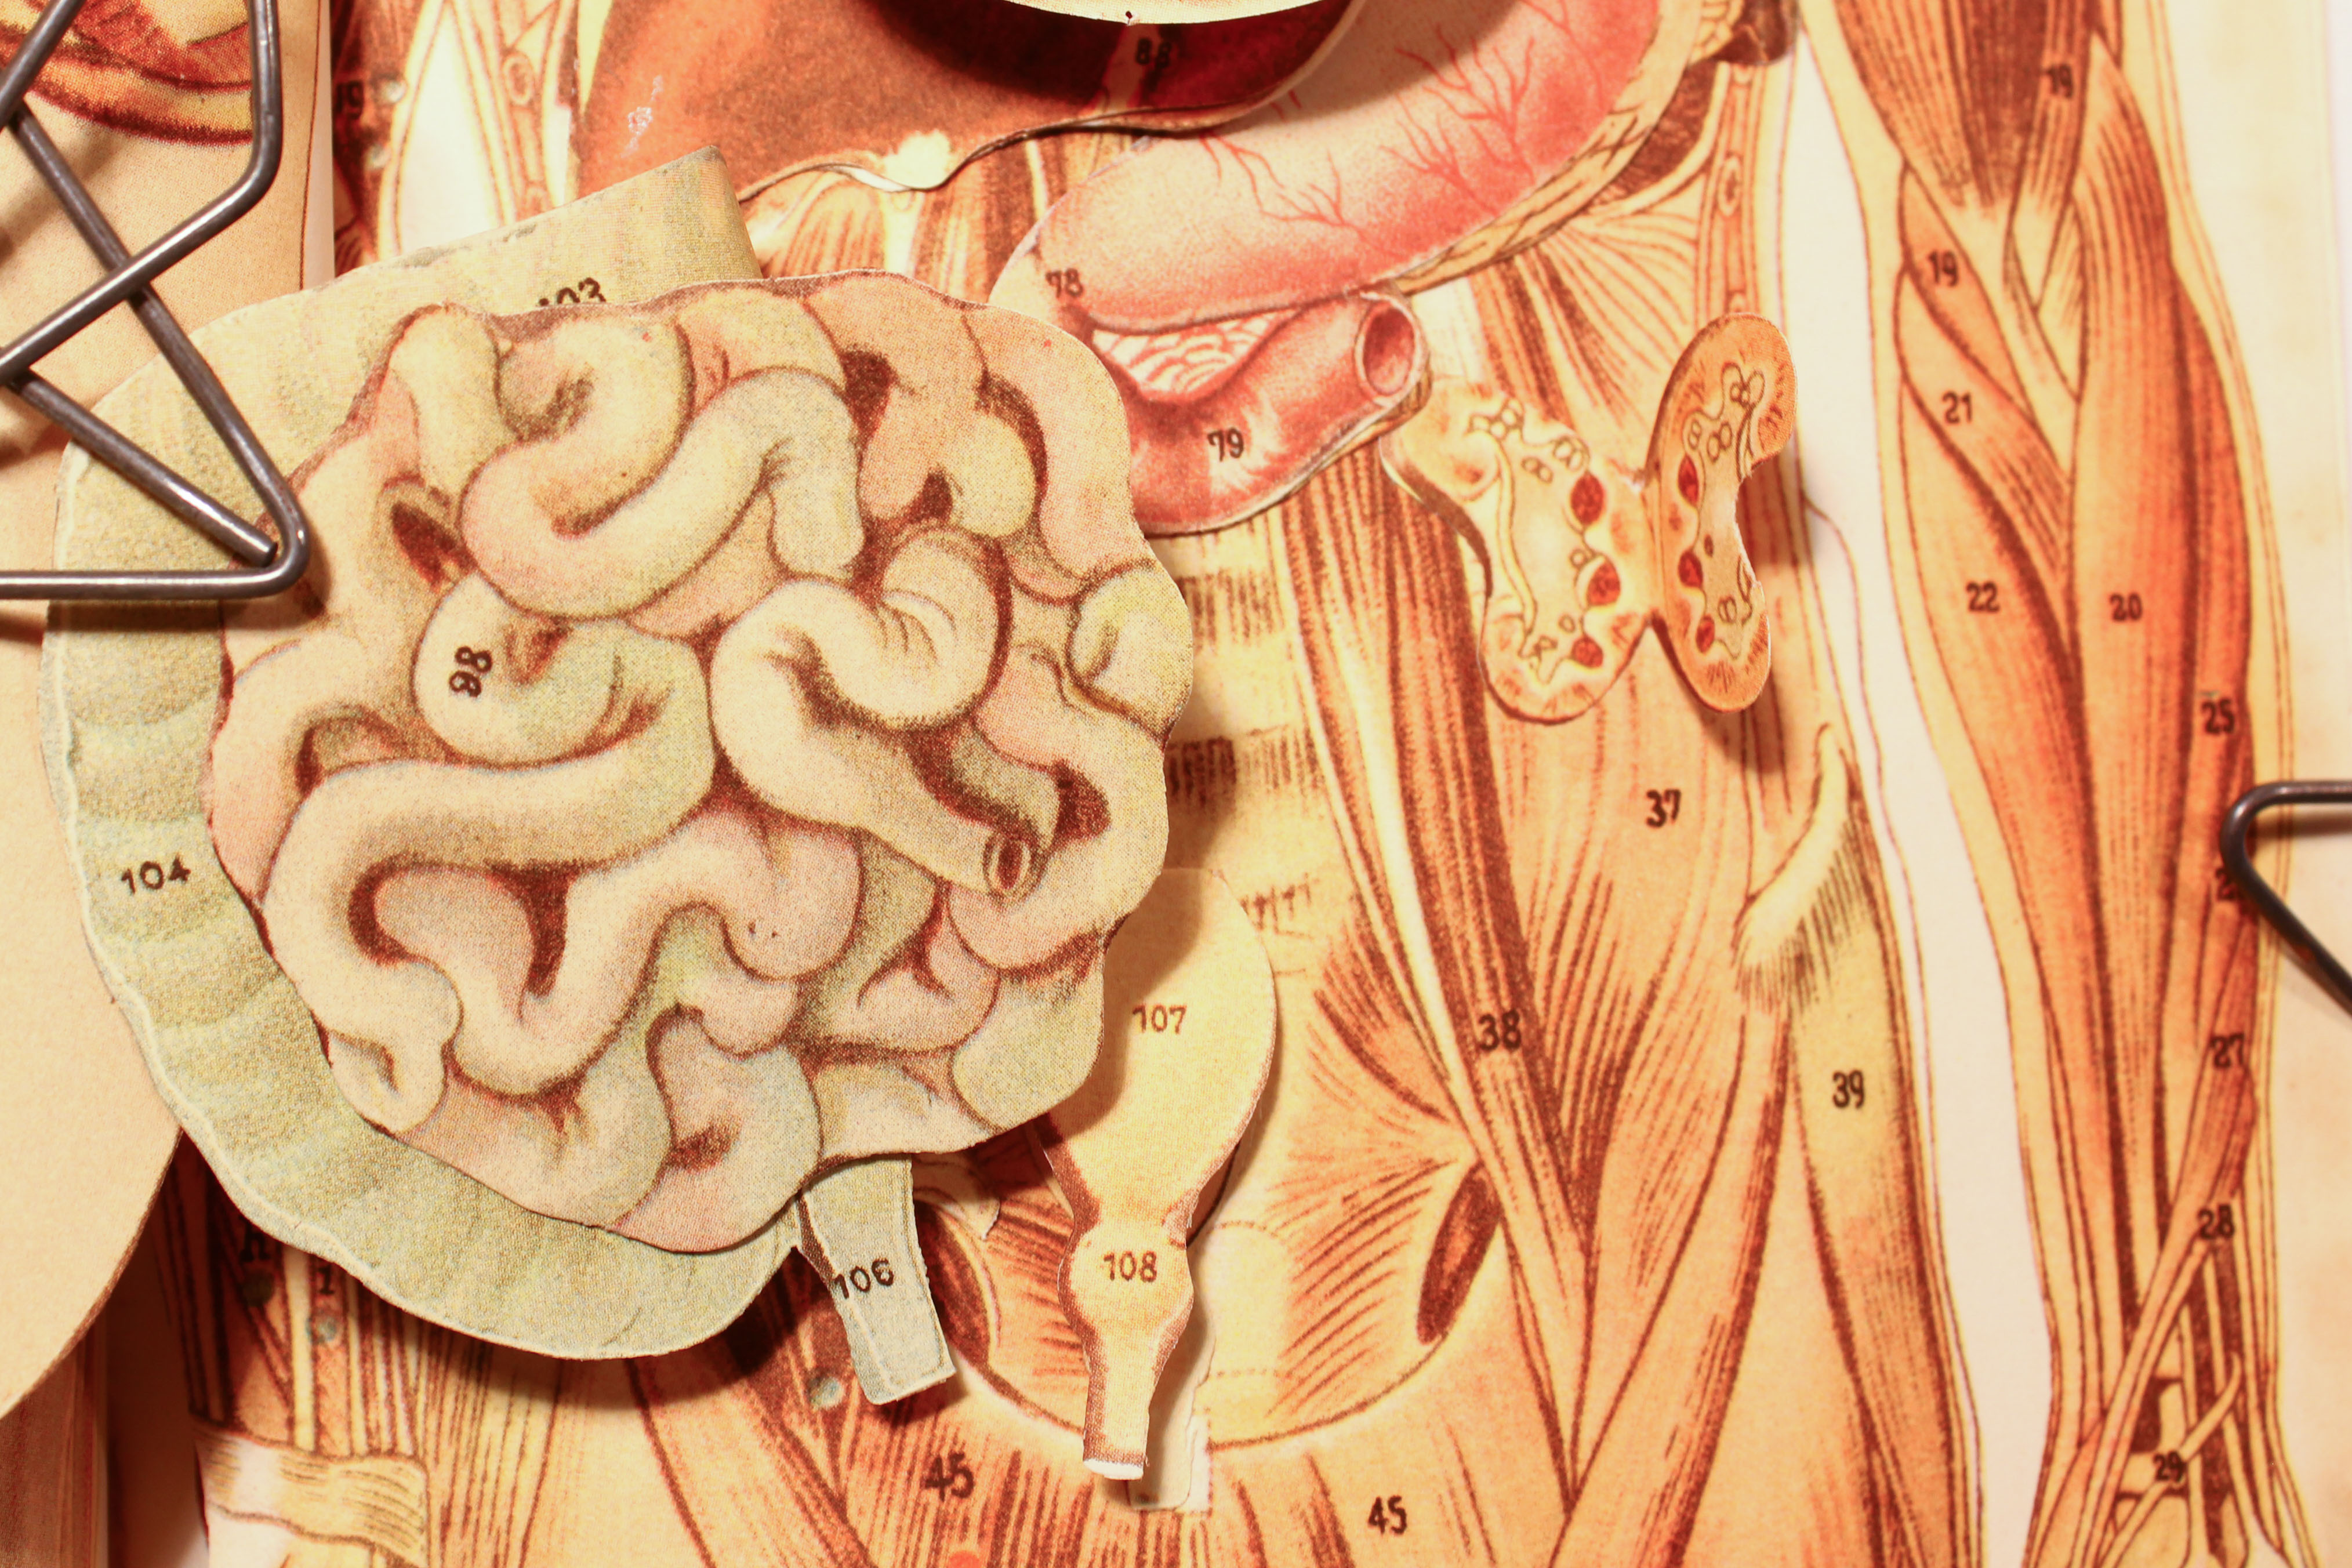 A close-up image of a diagram of a human male digestive system. (lungstruck, Flickr)